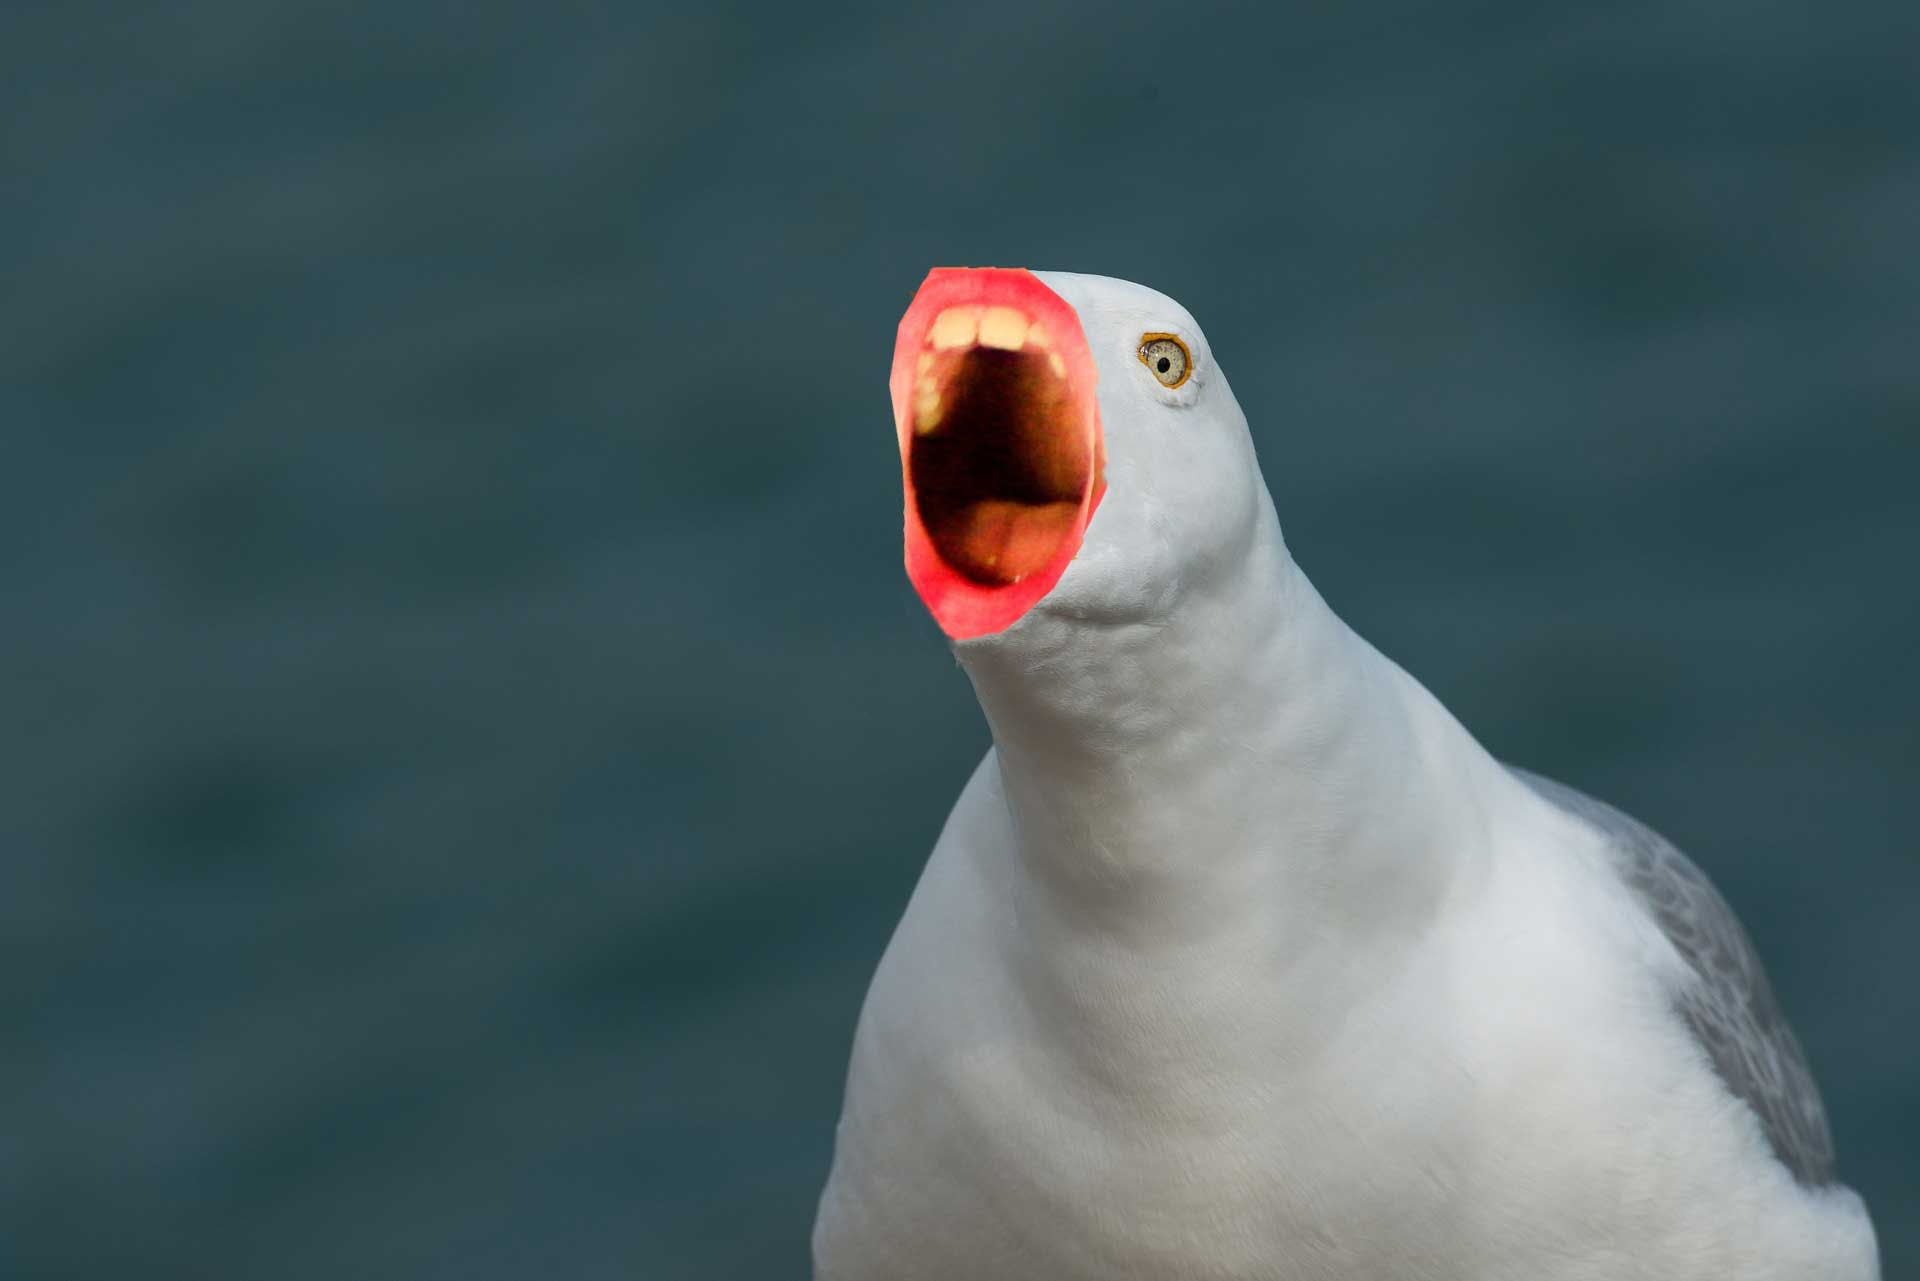 Seagull with incredibly terrifying human mouth